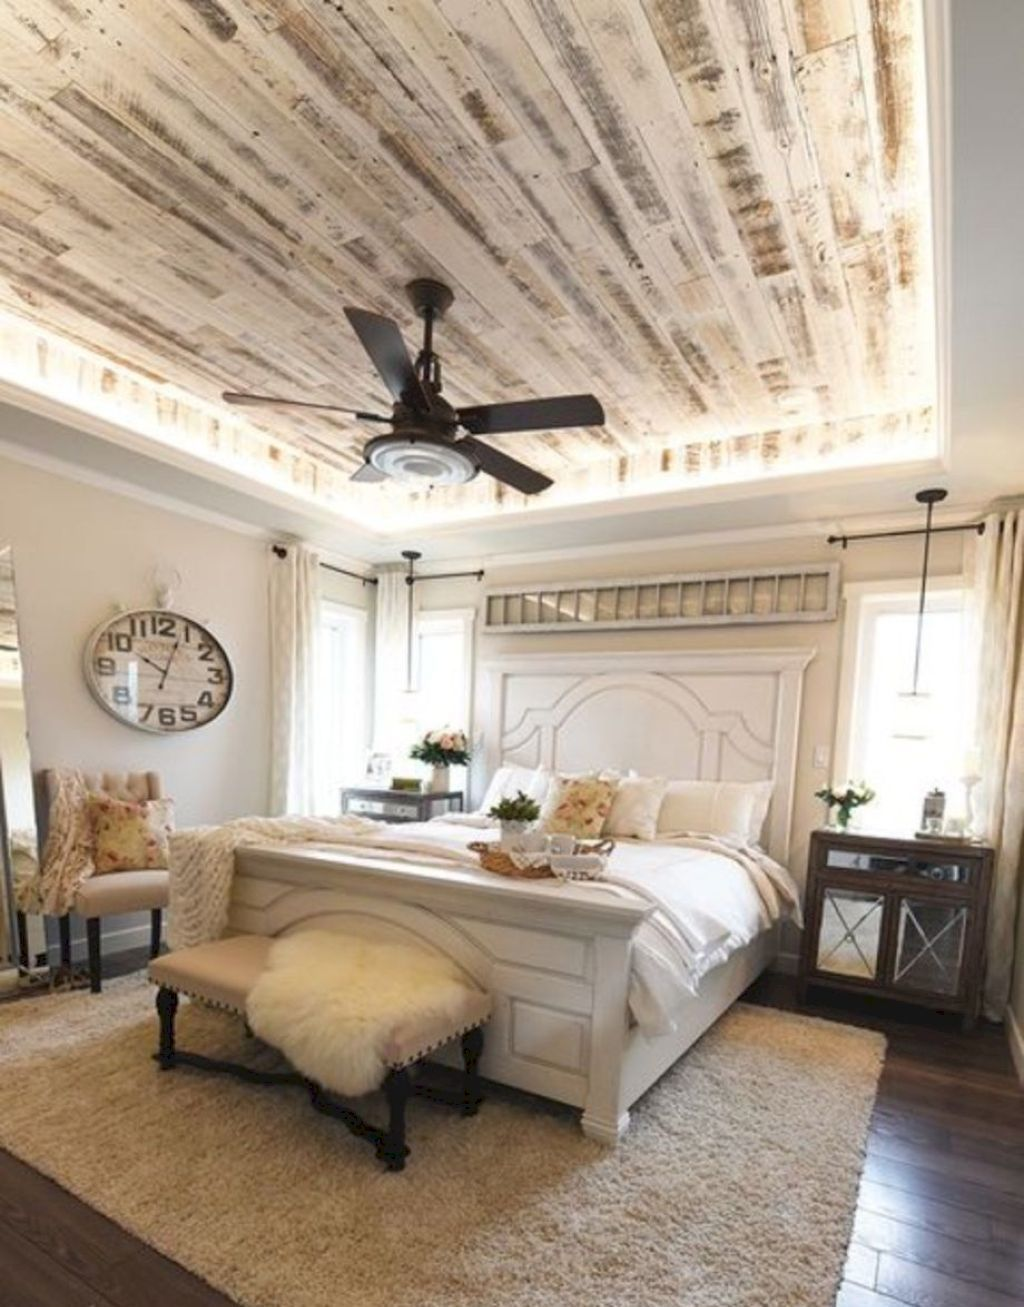 Decorating bedroom simple  best farmhouse home decor ideas  bedrooms master bedroom and future